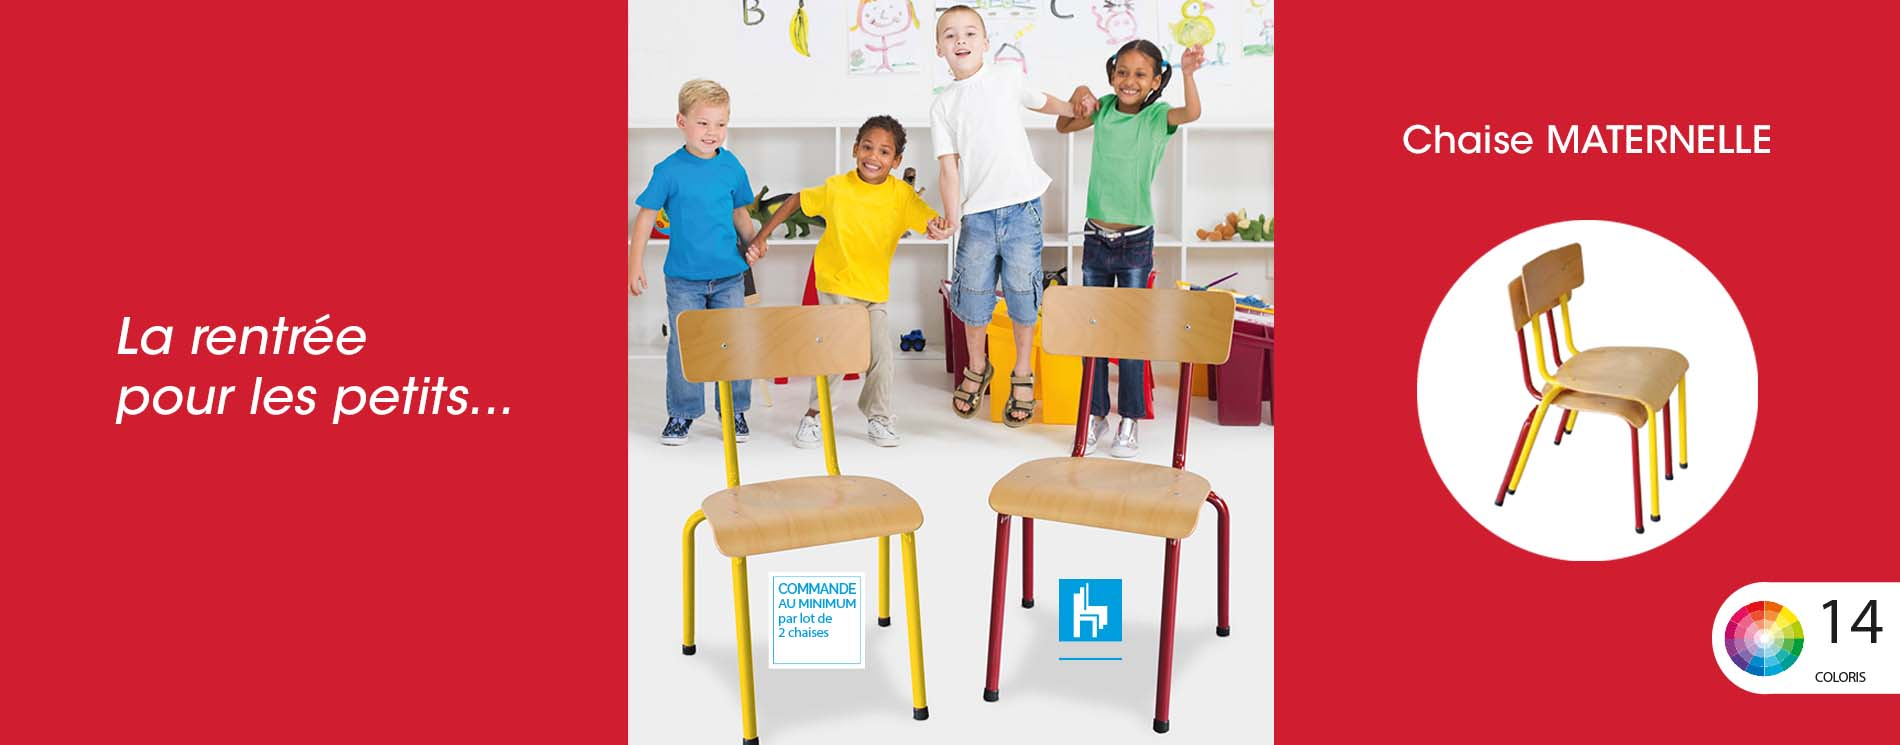 Chaise Maternelle